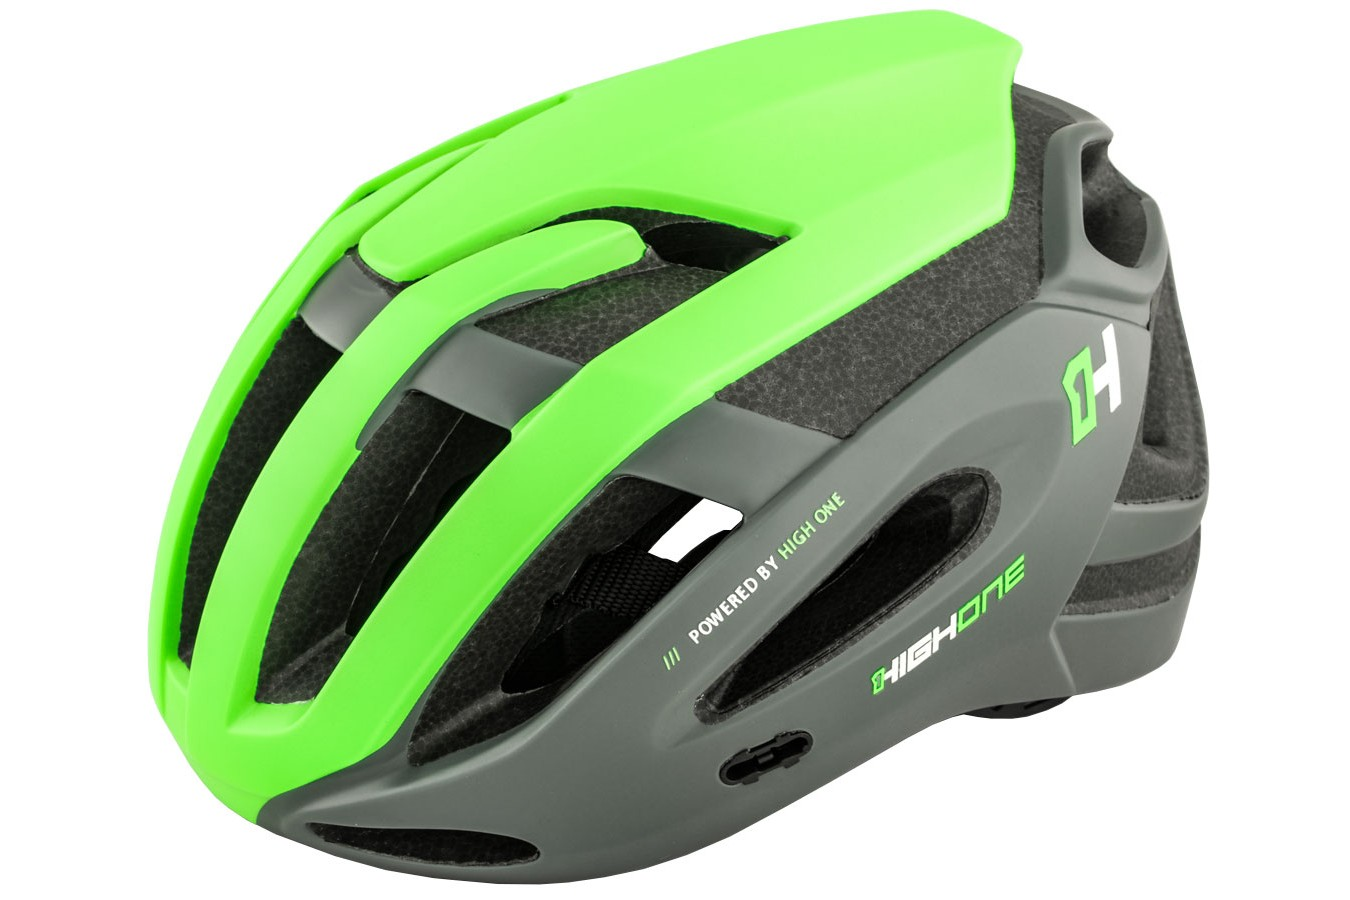 Capacete Ciclismo High One Ahead Verde - Tamanho M